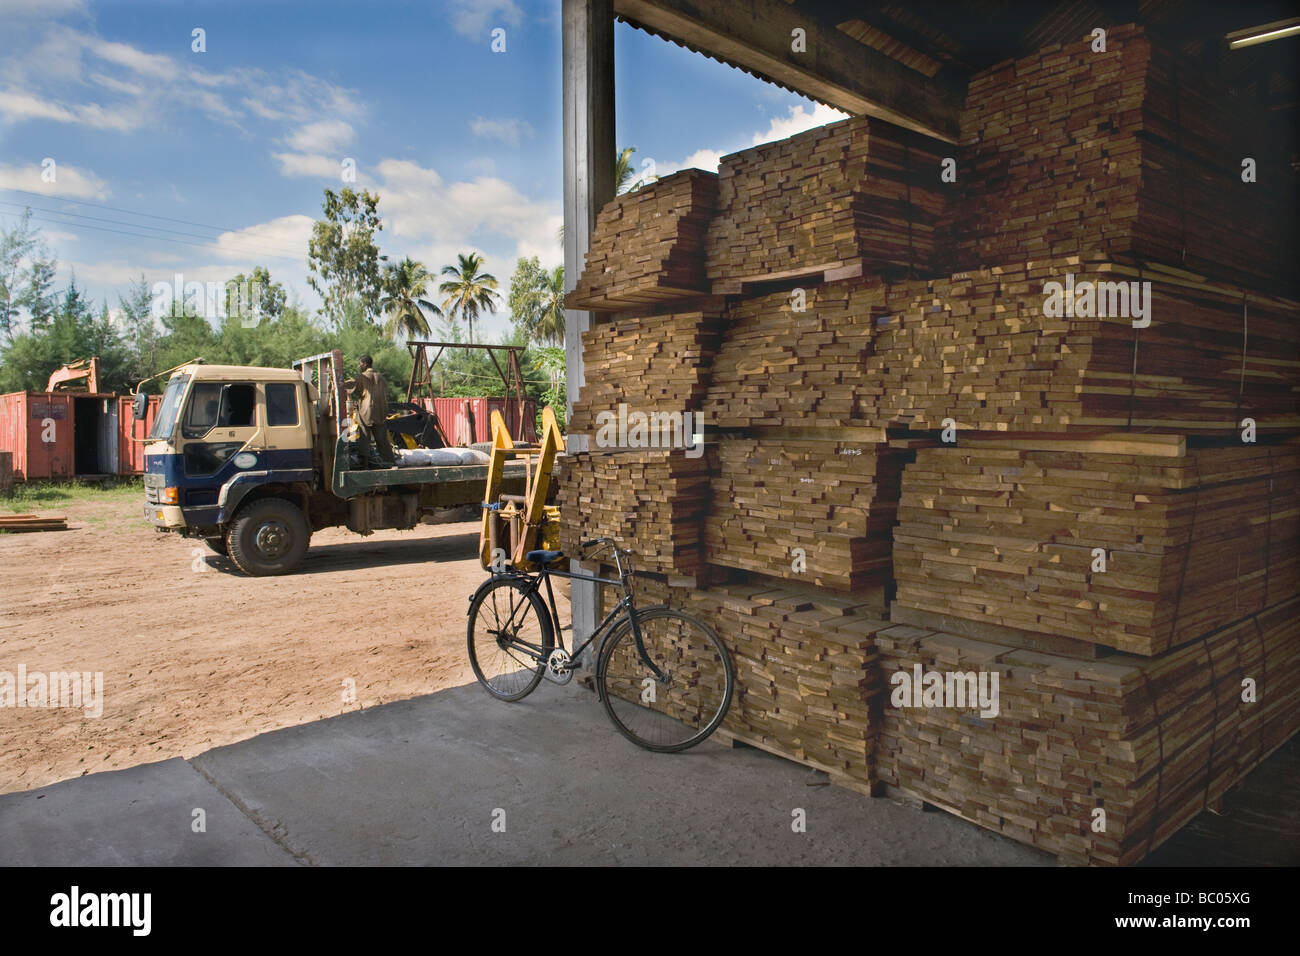 Hardwood planks for flooring cut for export in a sawmill Quelimane Mozambique - Stock Image